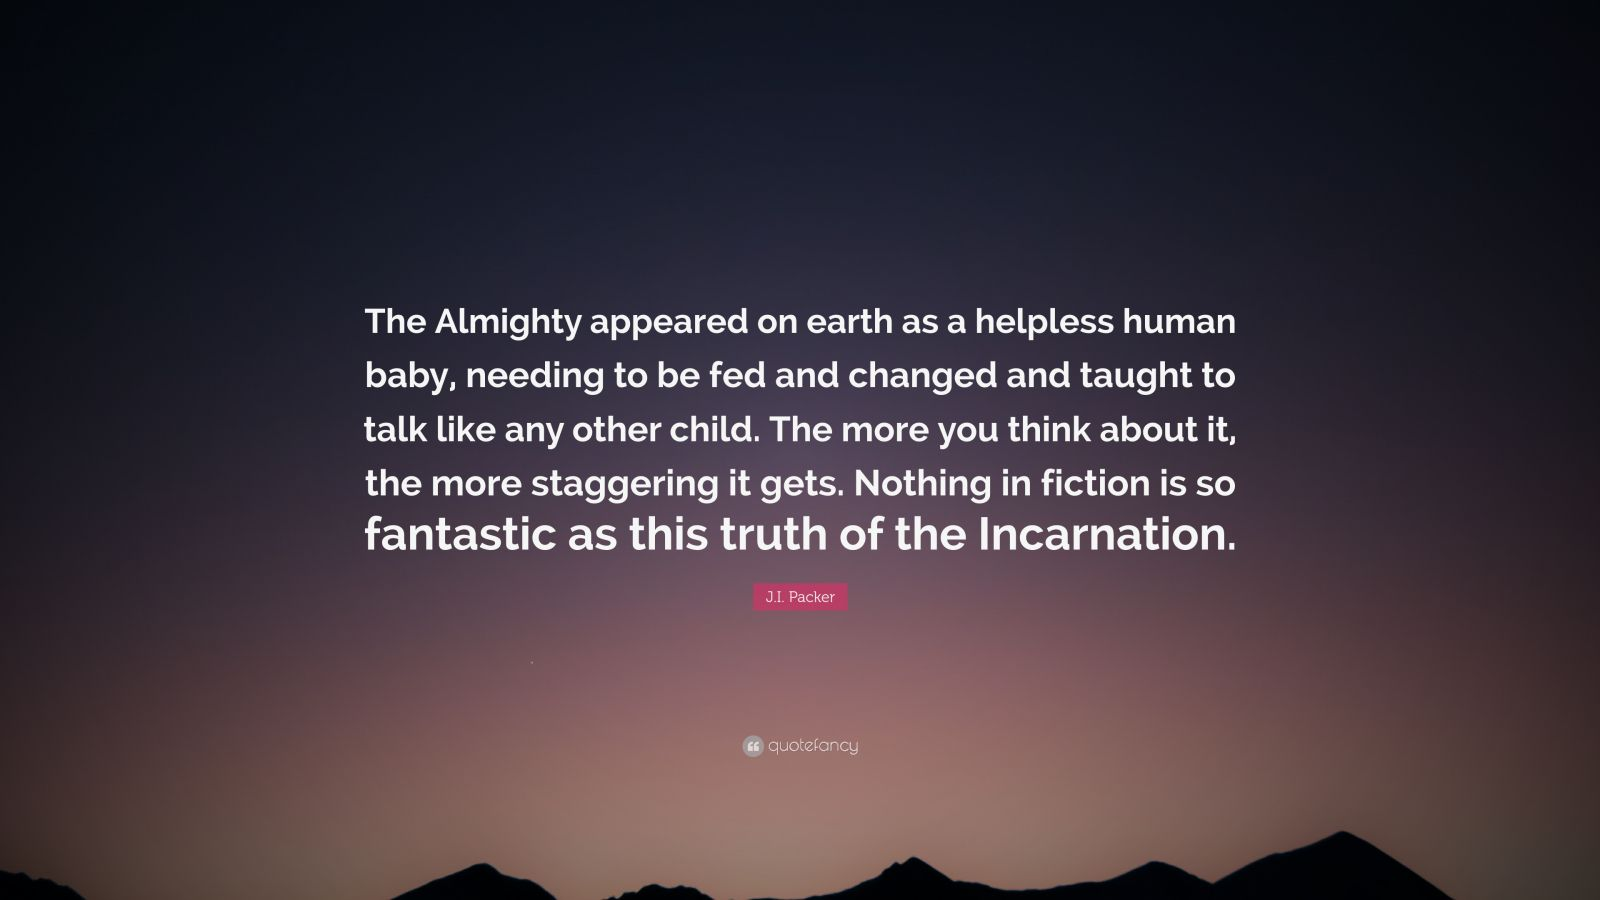 "J.I. Packer Quote: ""The Almighty appeared on earth as a helpless human baby, needing to be fed and changed and taught to talk like any other child. The more you think about it, the more staggering it gets. Nothing in fiction is so fantastic as this truth of the Incarnation."""